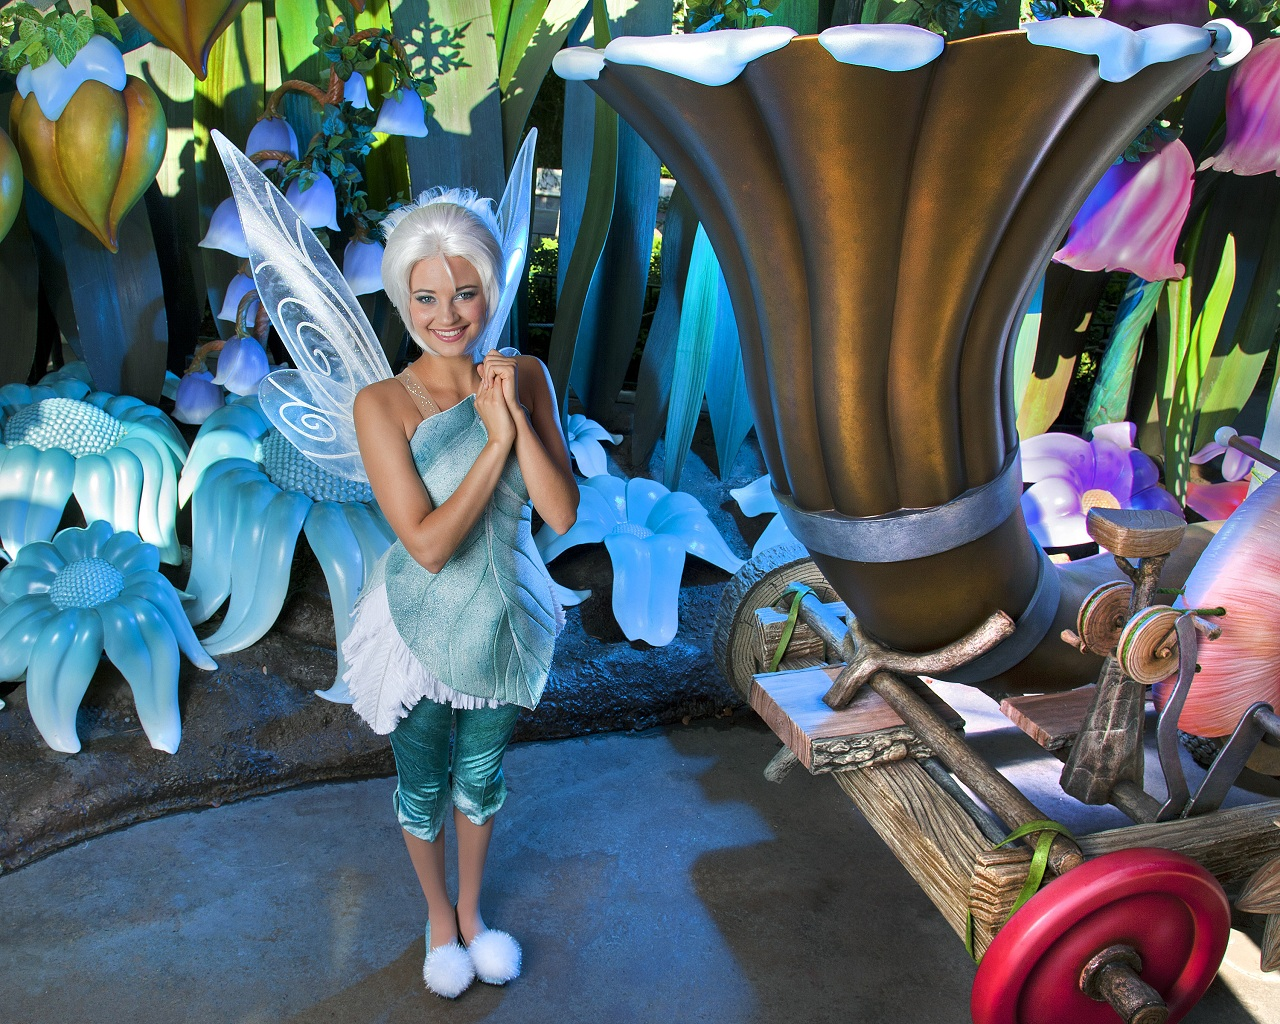 Periwinkle at Disneyland